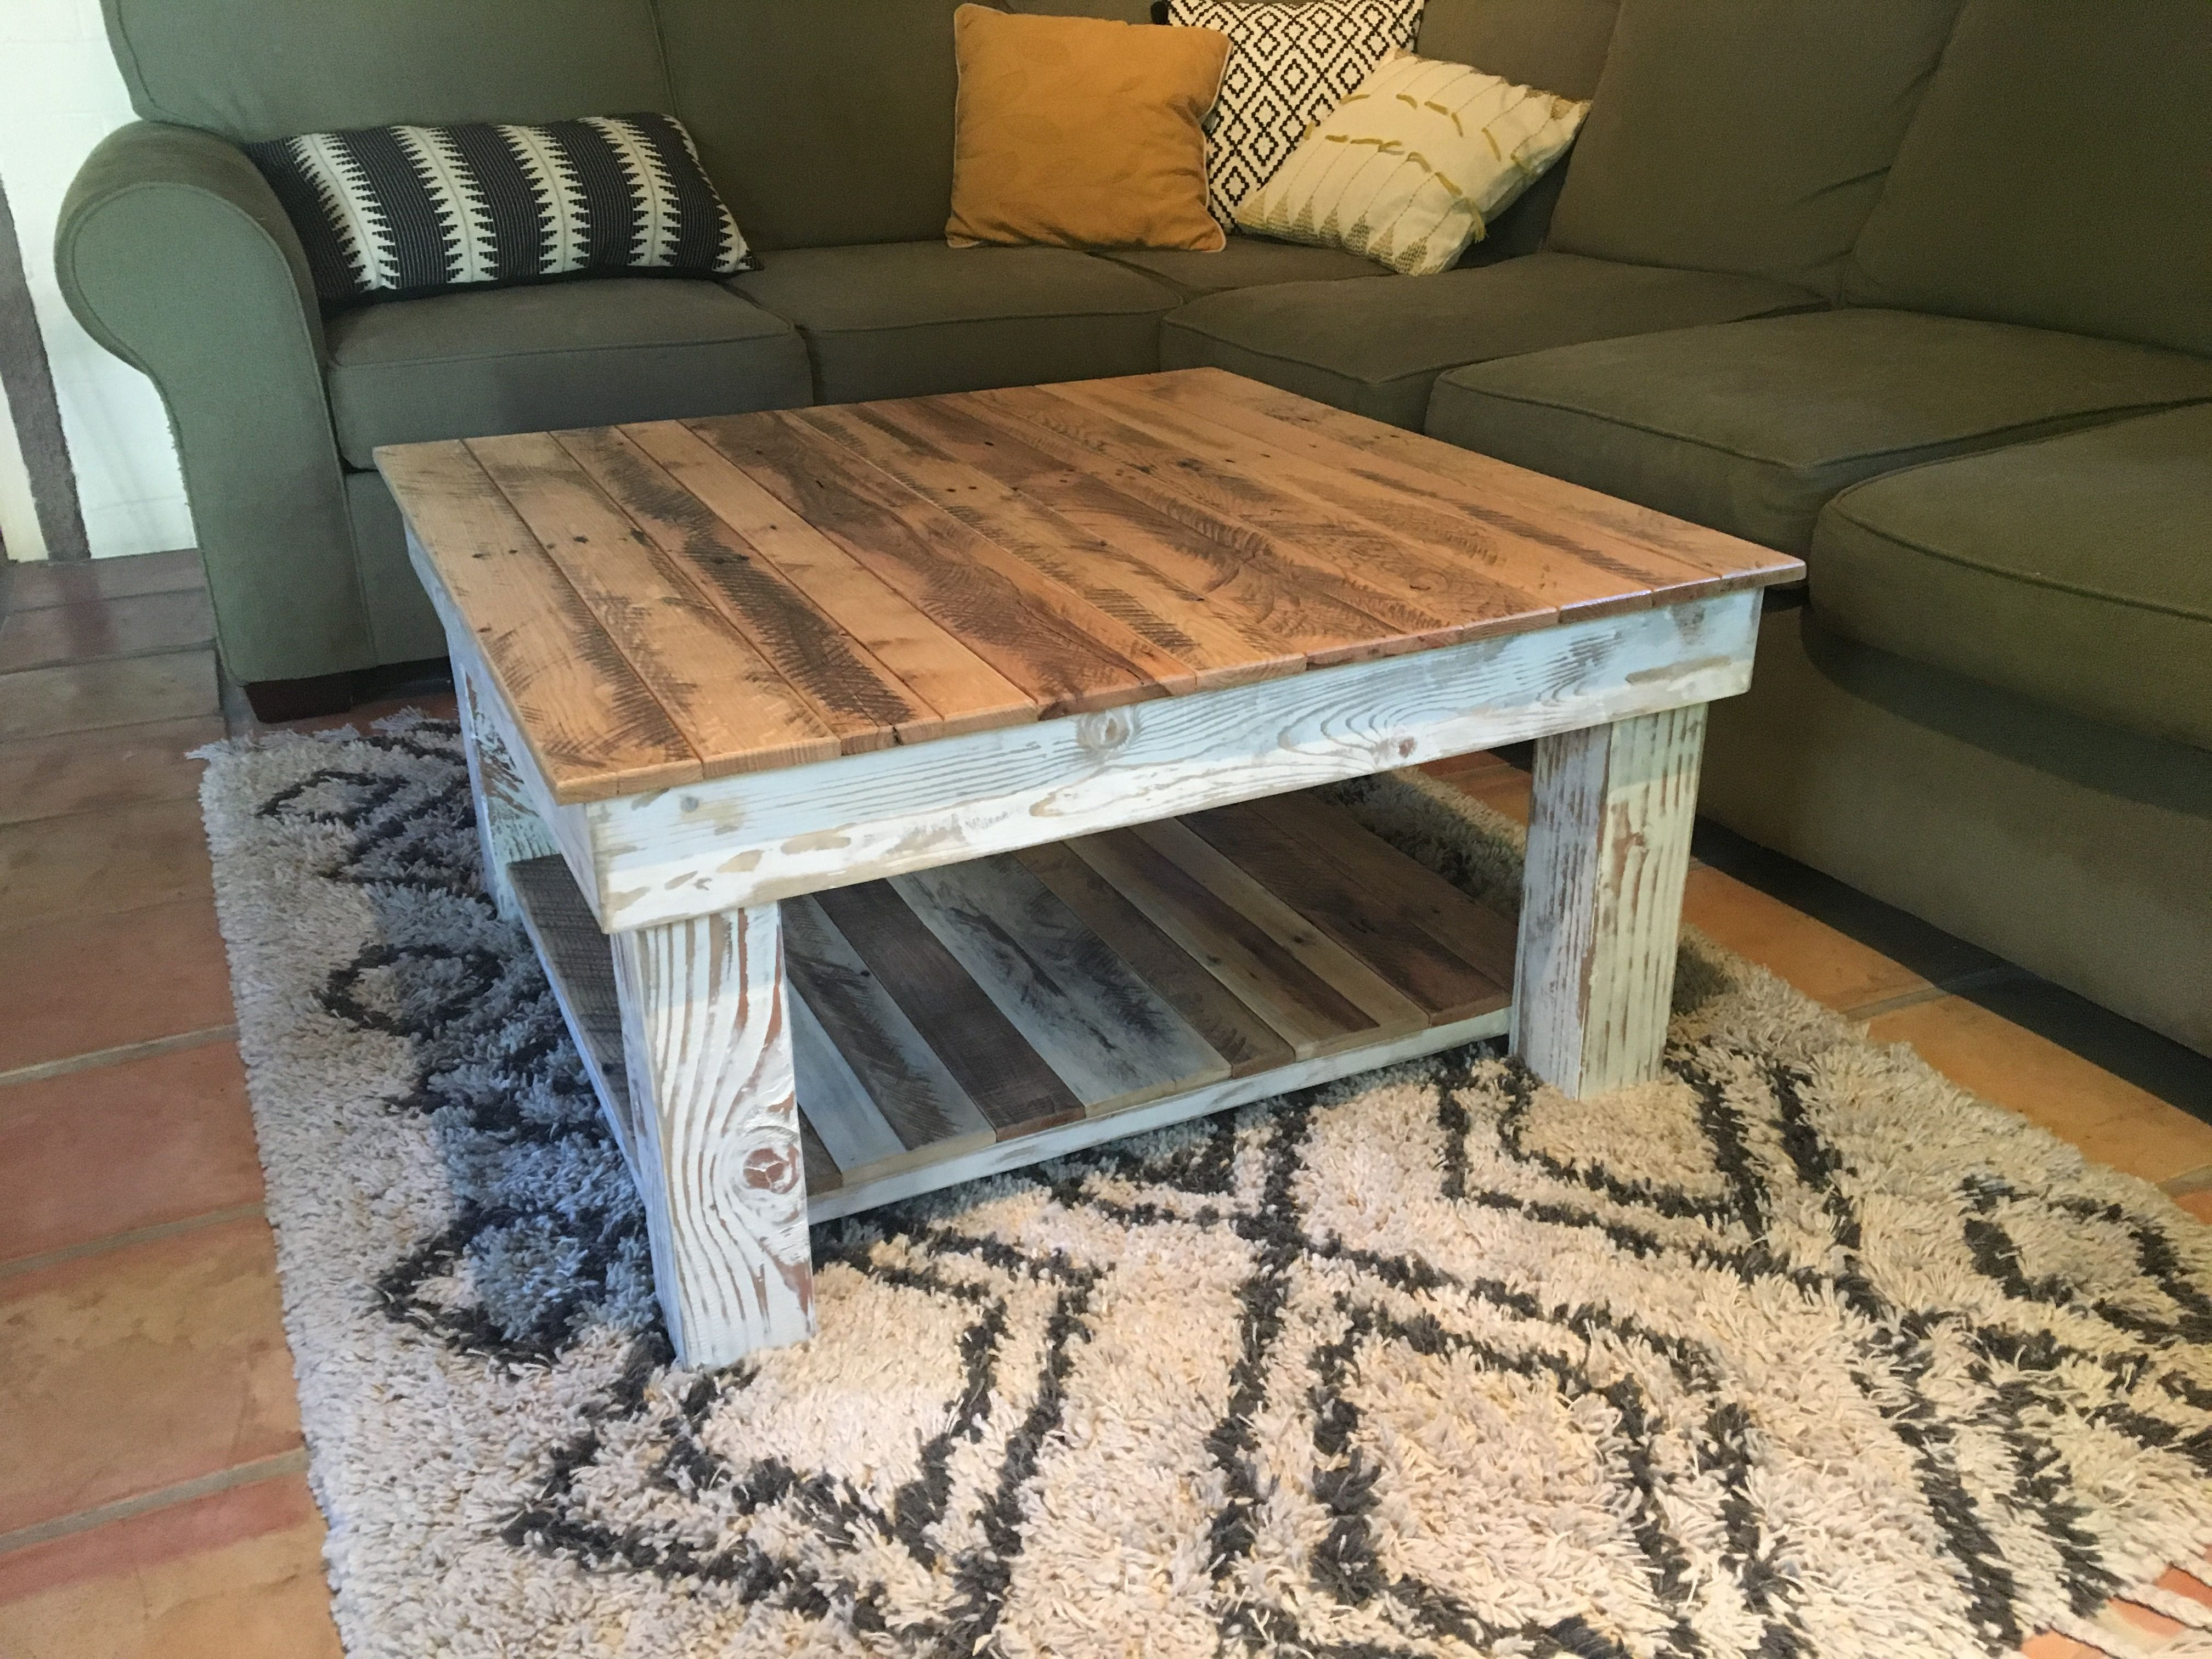 - Handmade Reclaimed Wood Rustic Coffee Table By A.M.Abbott Designs